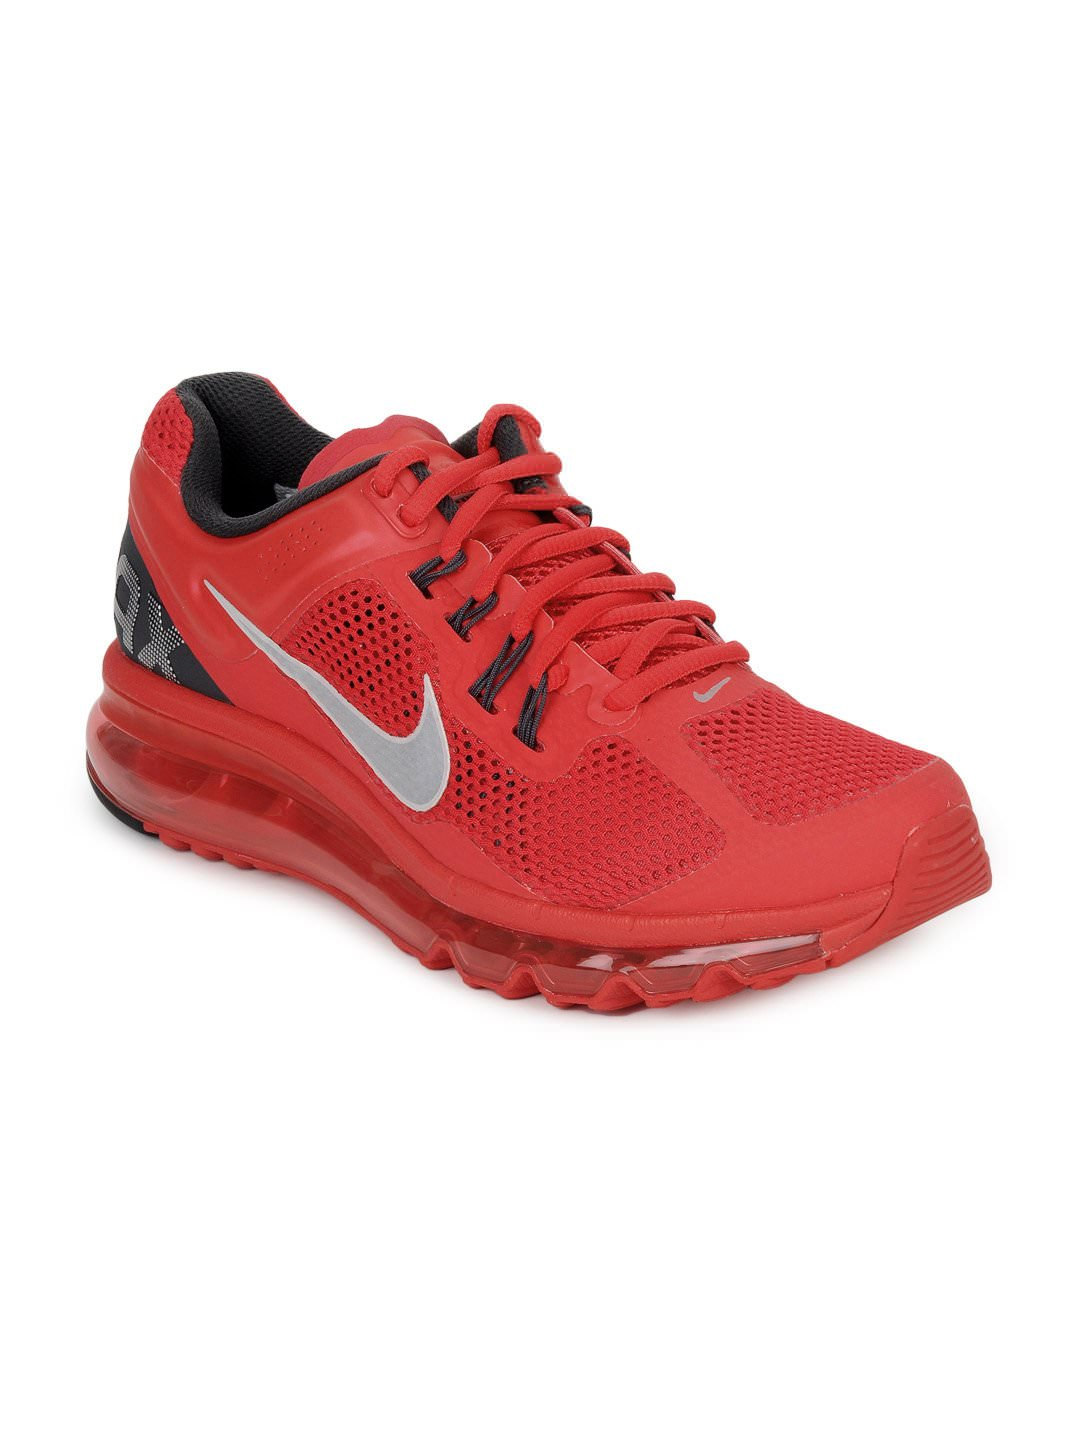 Fashion: New Design Nike Shoes In 2013 For Boys